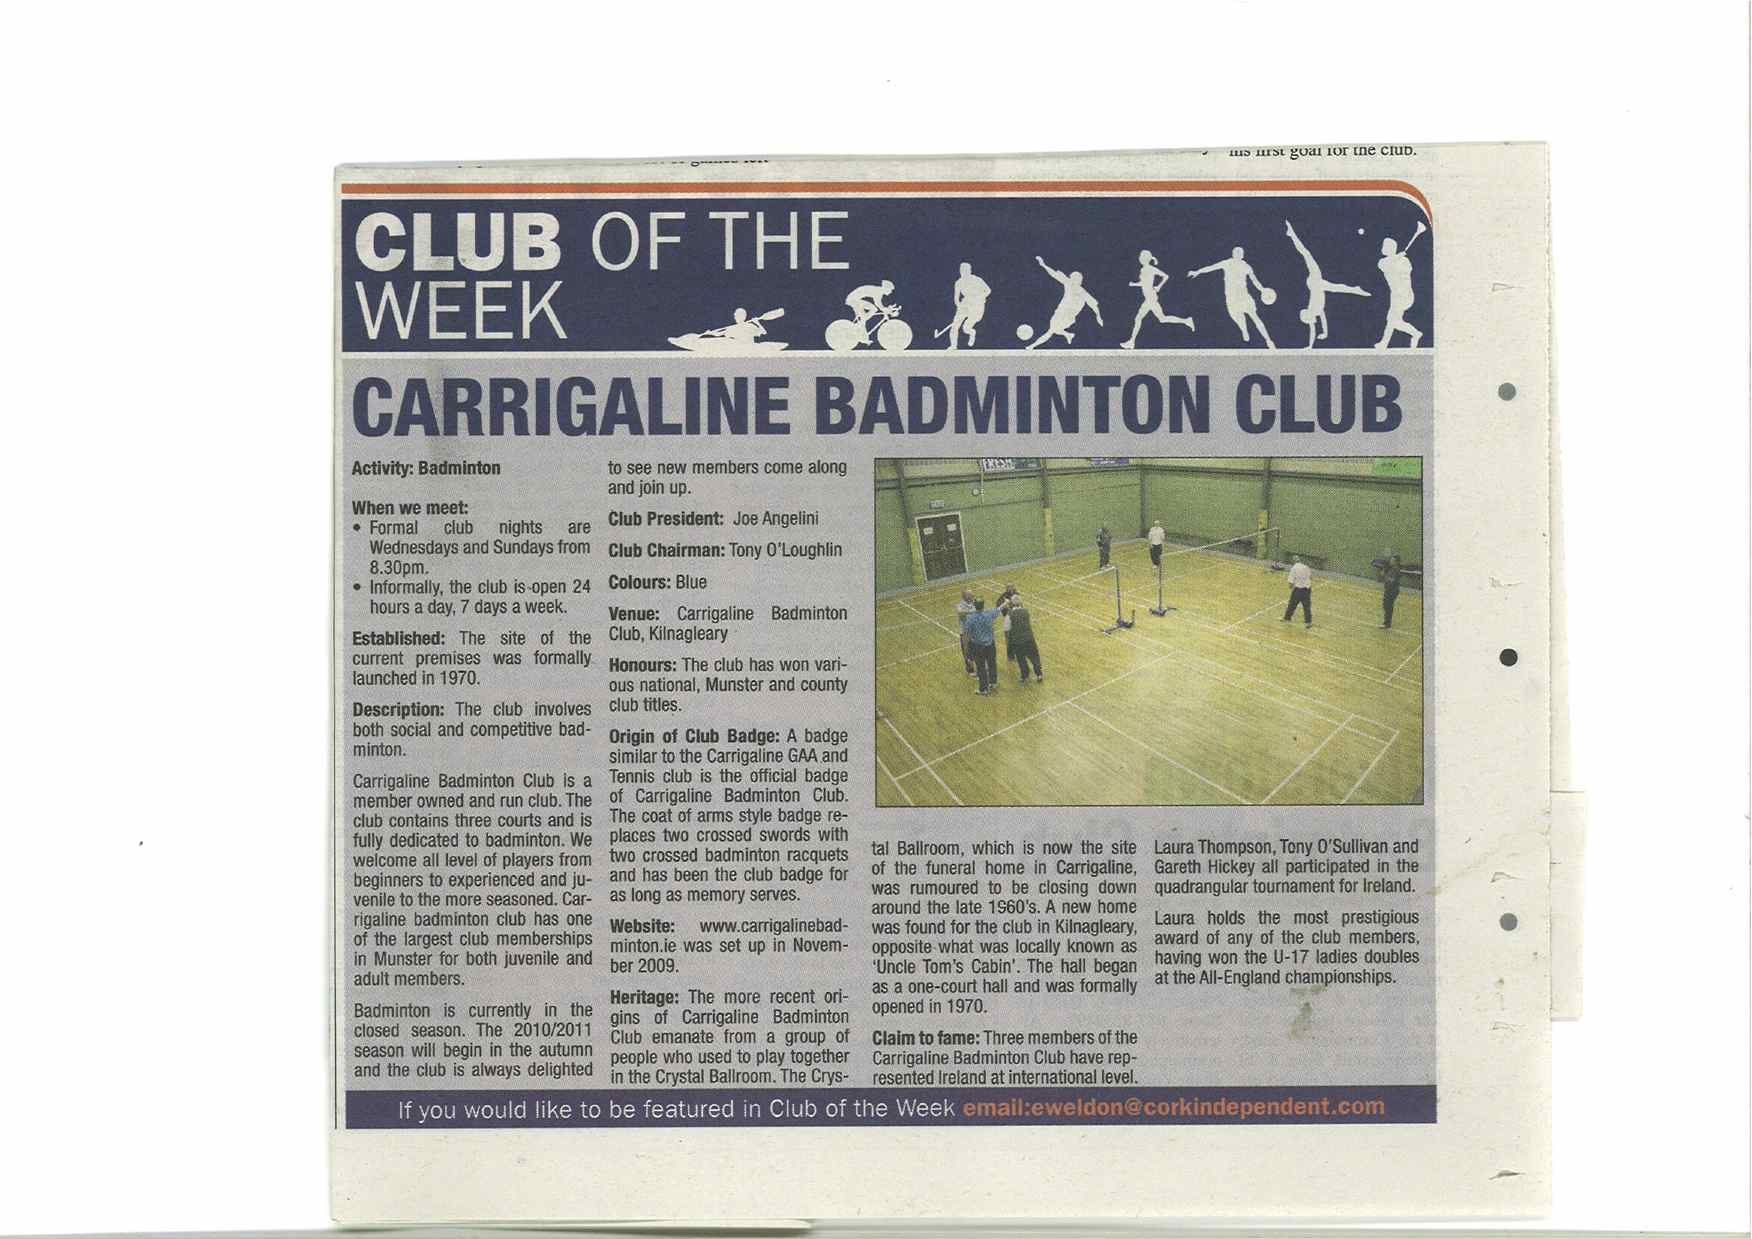 Cork Independent Club of the Week